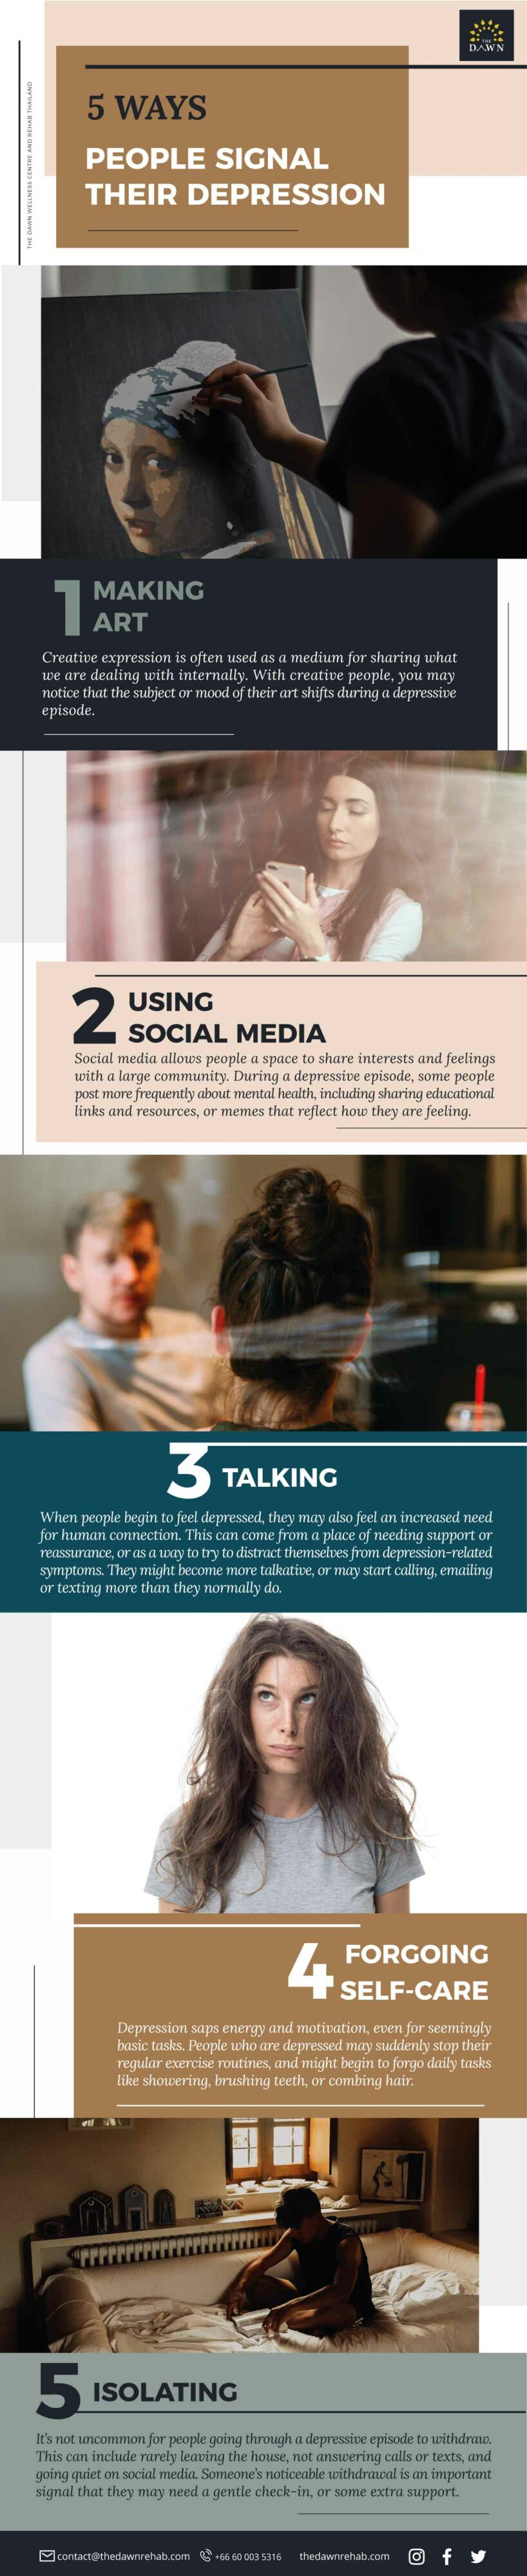 Learn more about how to identify when someone is entering a depressive episode in this infographic.